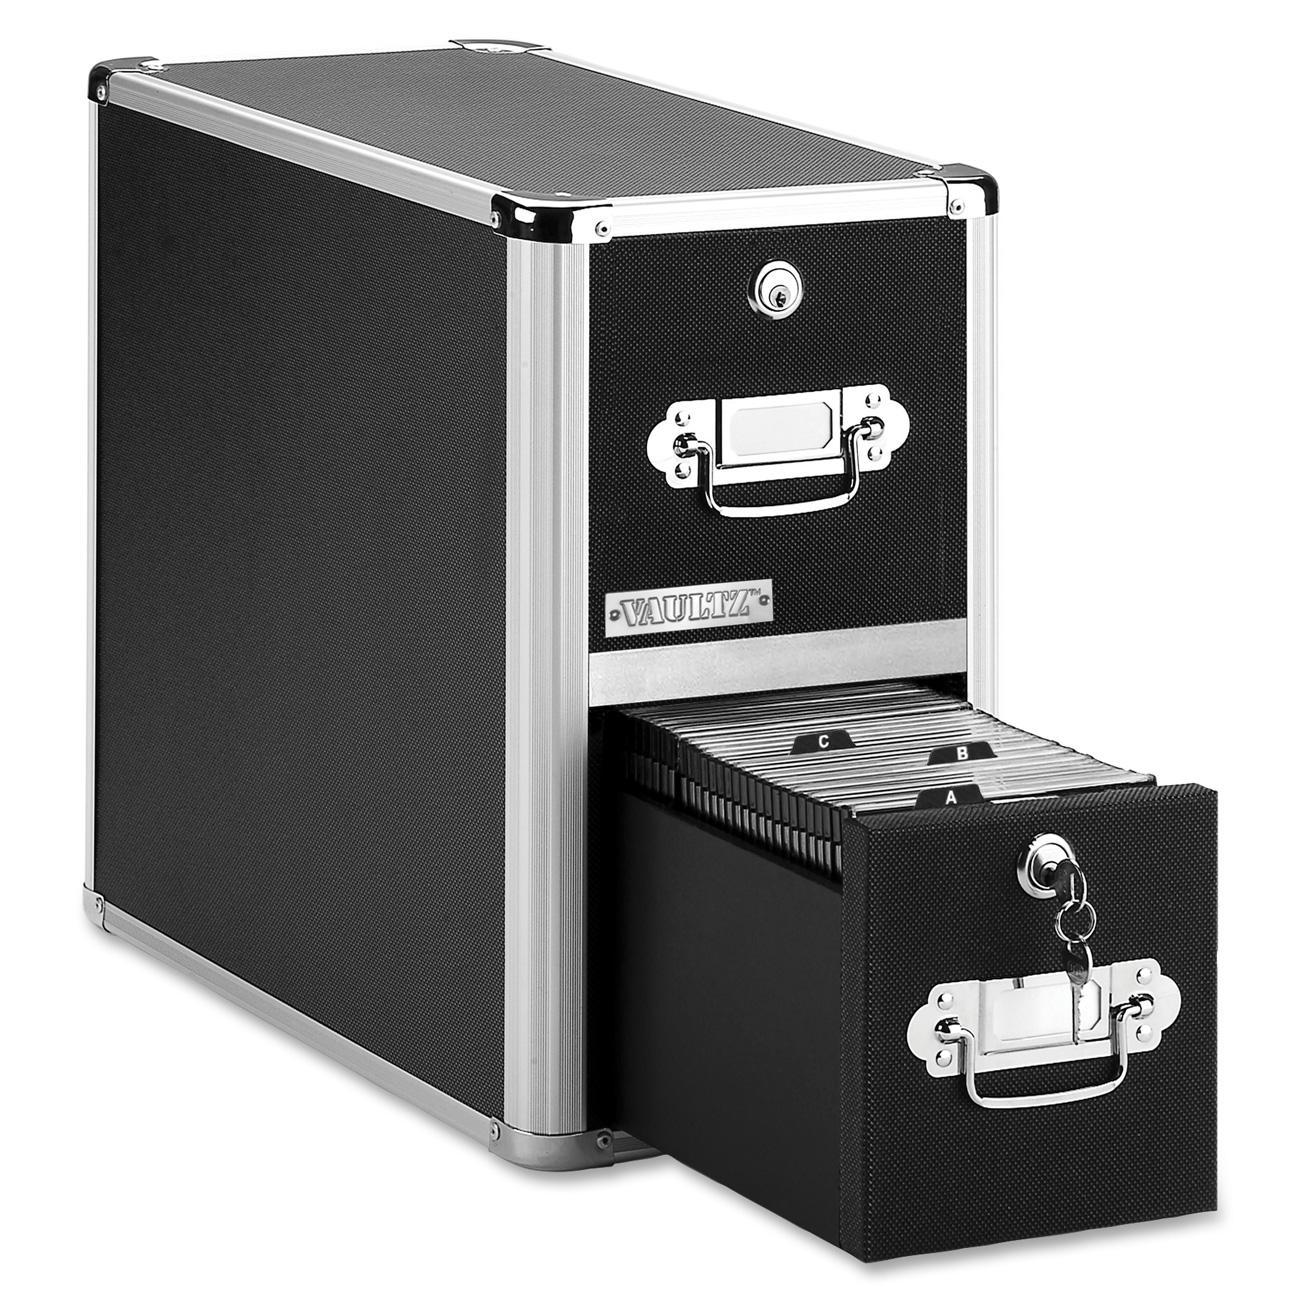 Vaultz, IDEVZ01094, Disc Locking CD/DVD Cabinets, 1 Each, Black